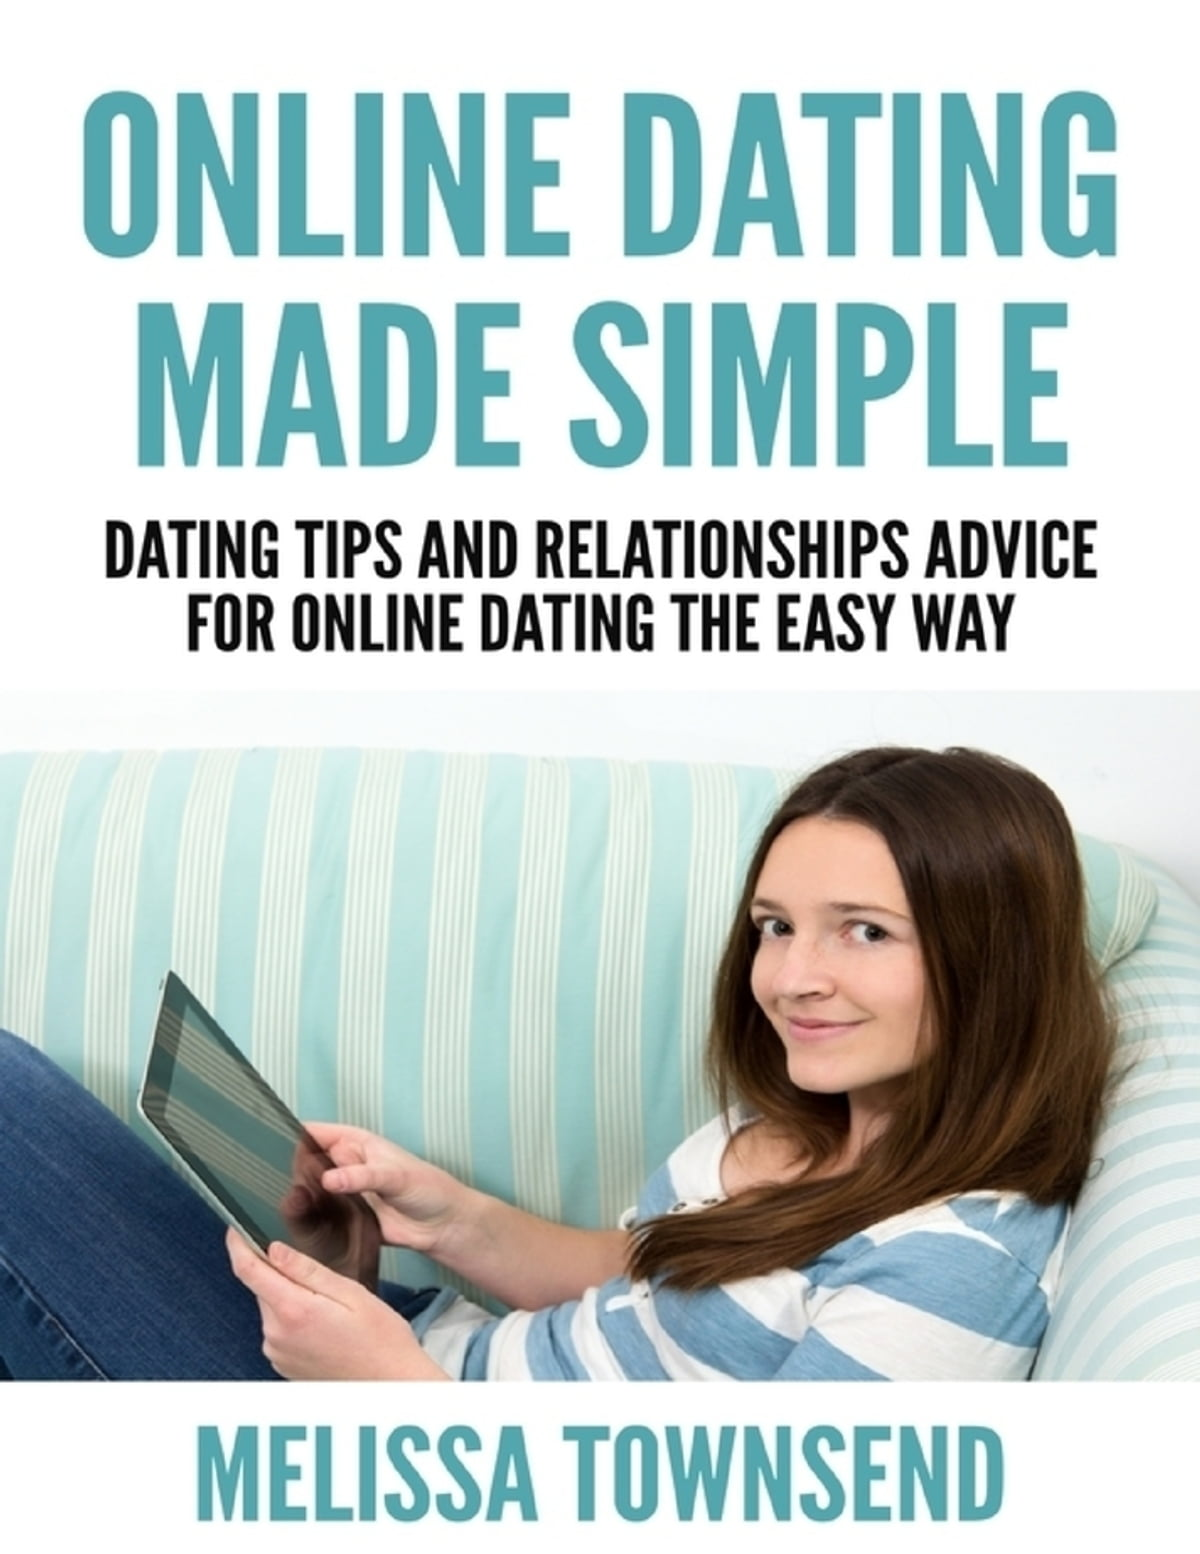 Photo advice for online dating